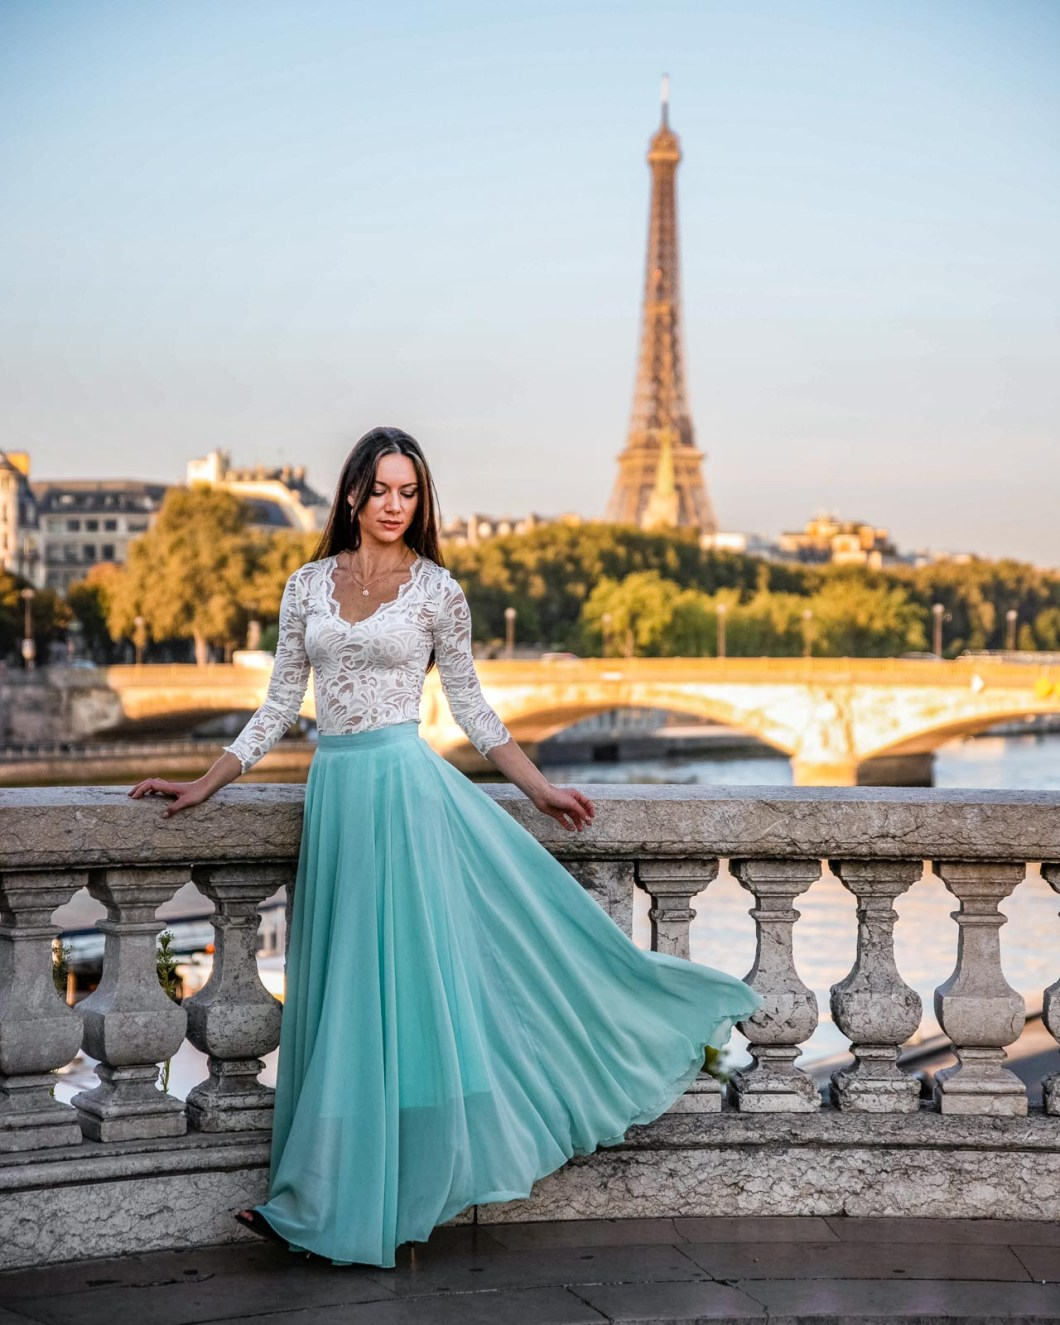 Photoshoot at the Pont Alexandre III